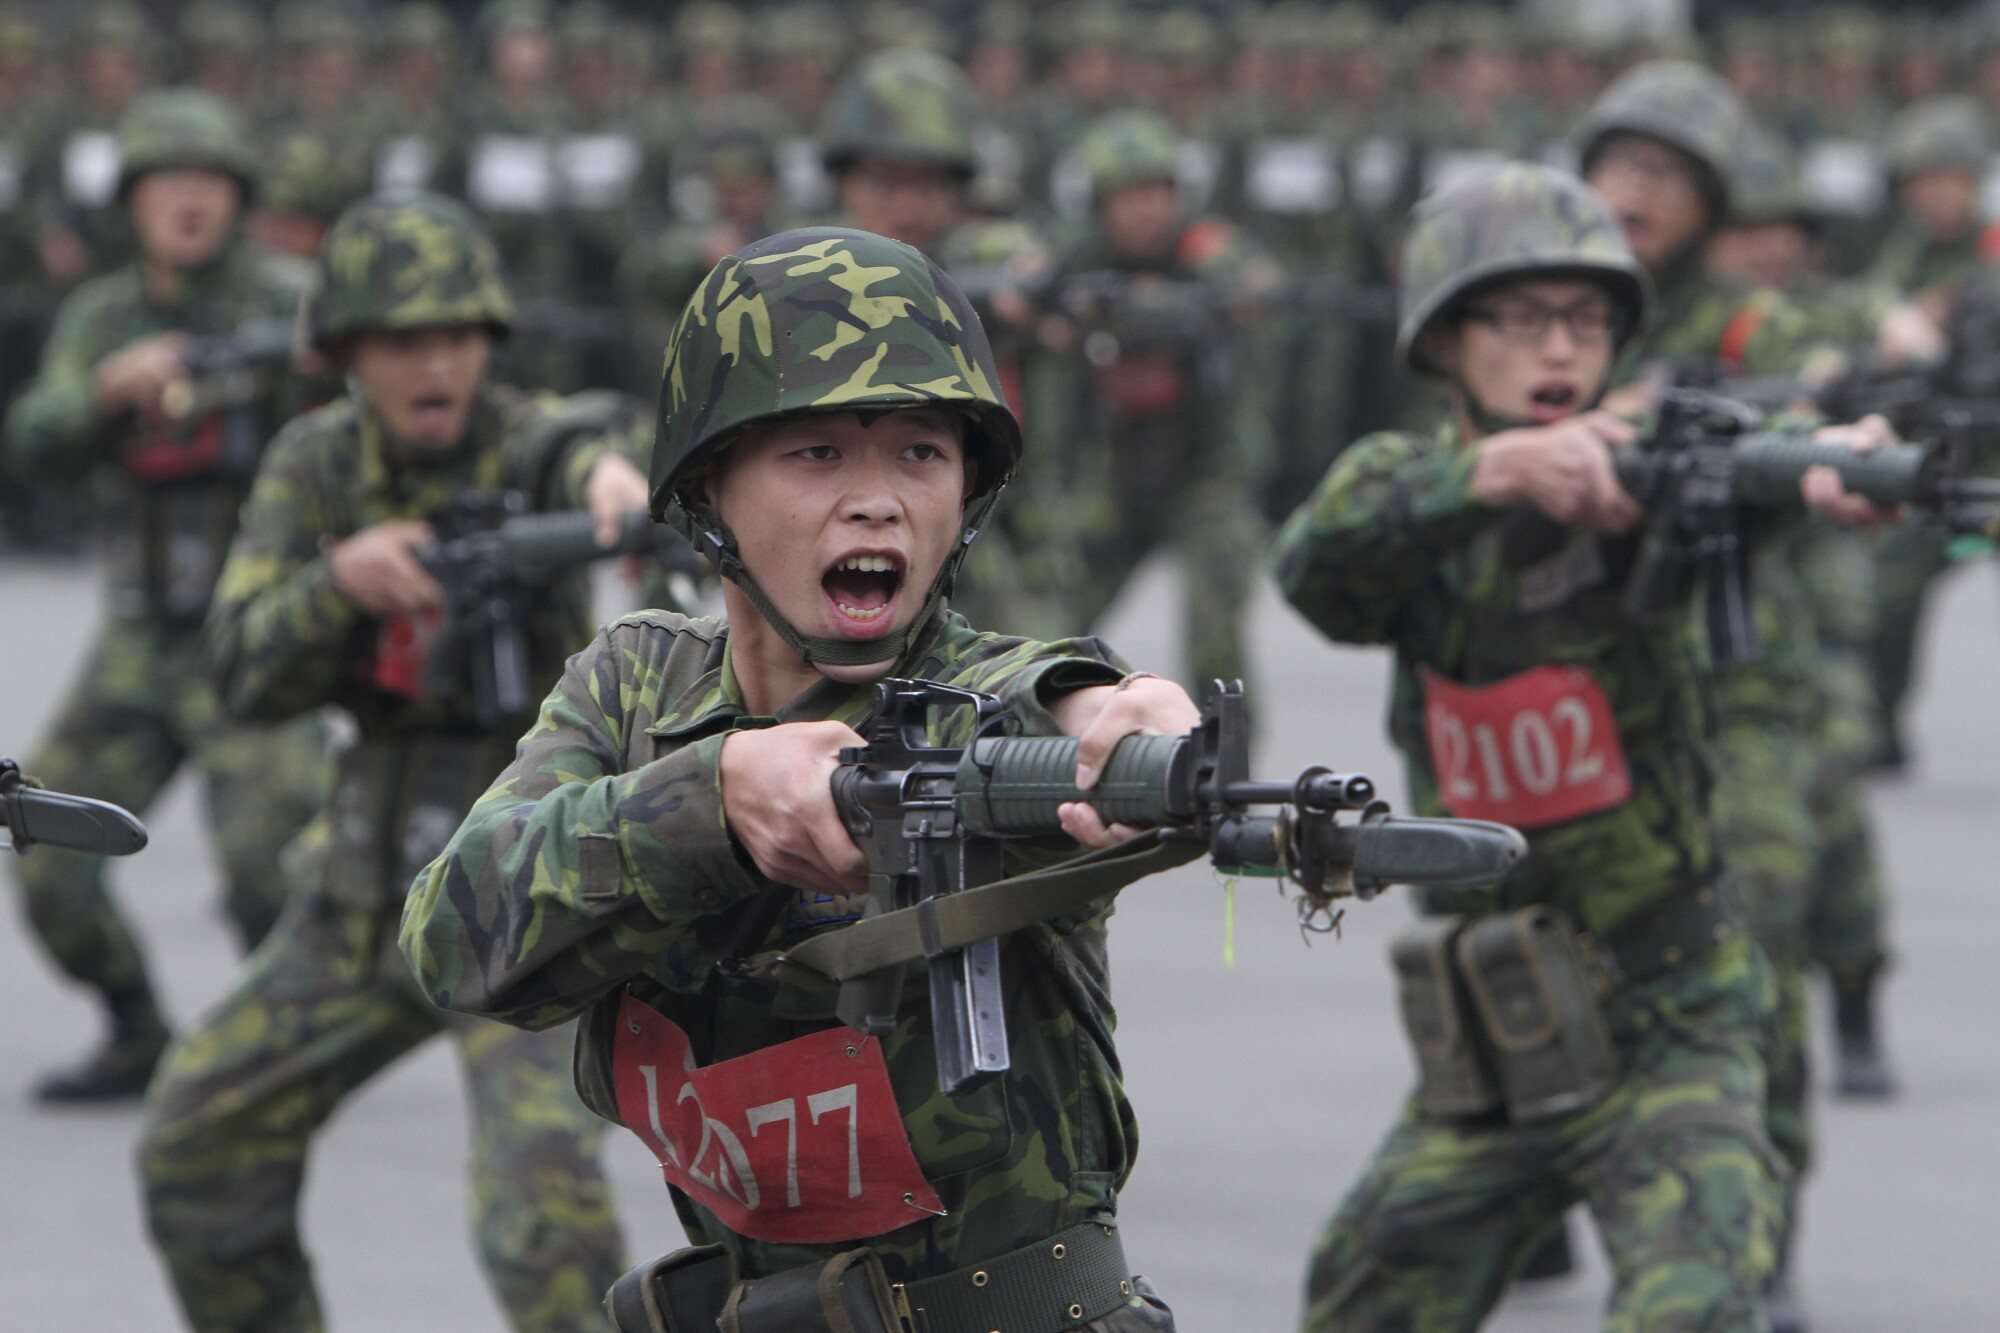 New recruits practice at a military training center in Hsinchu County, northern Taiwan.